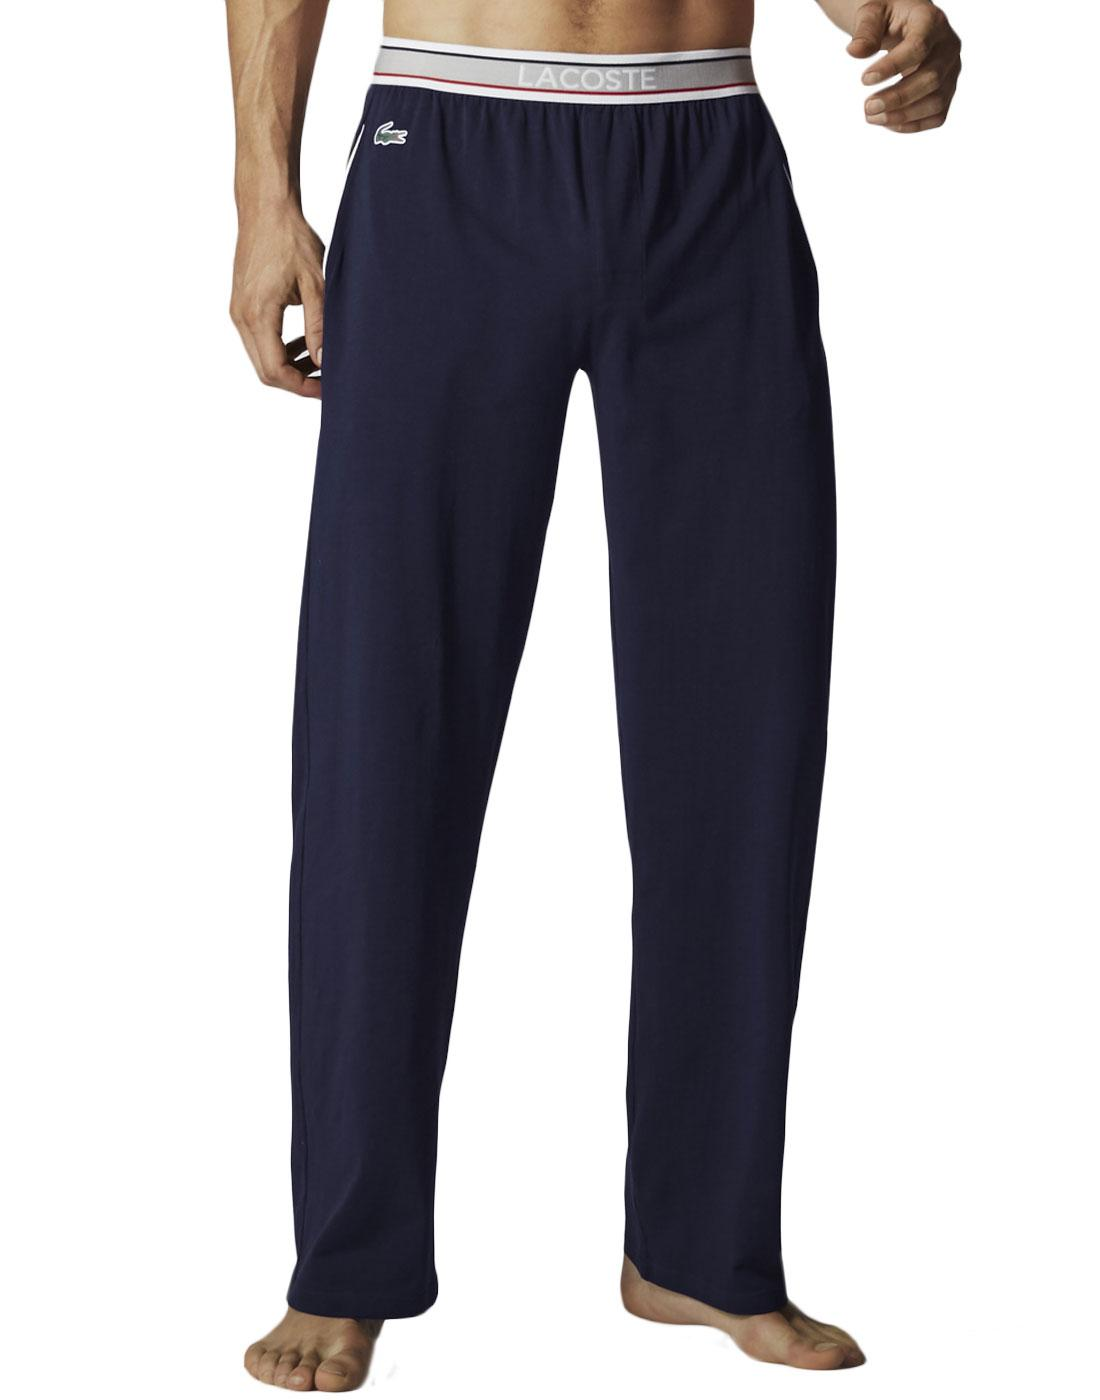 + LACOSTE Retro Stripe Waistband Long Lounge Pants